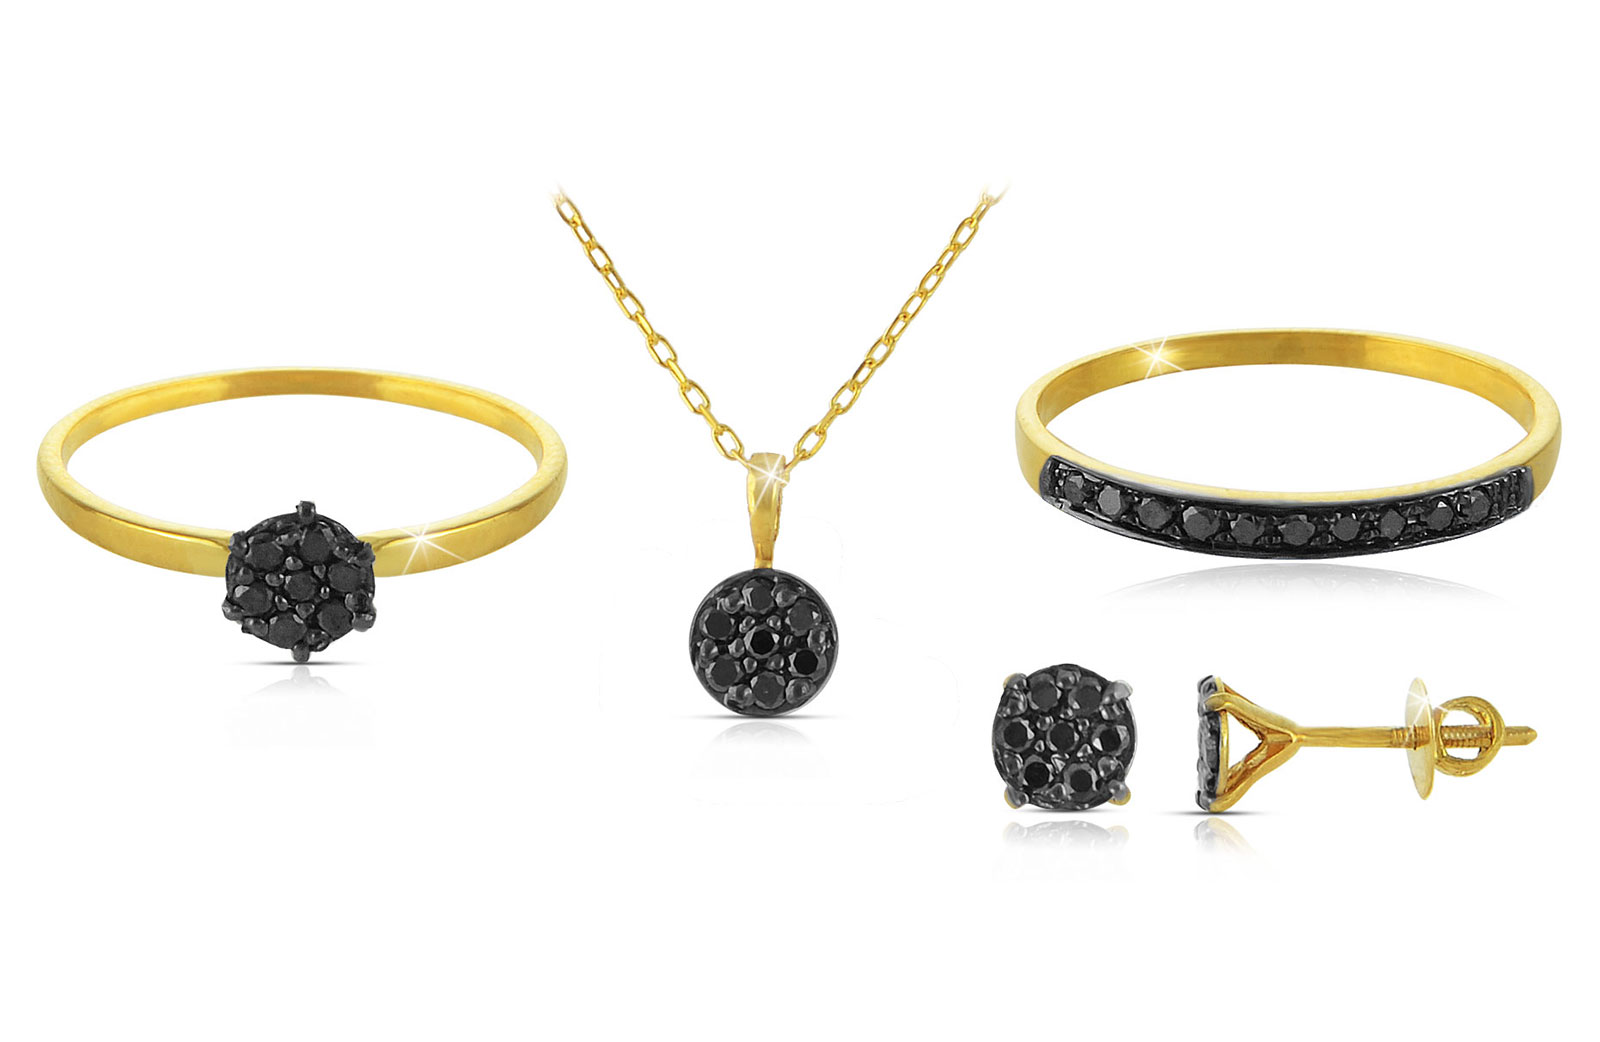 Vera Perla 18k  Solid Yellow Gold Black Diamonds Solitaire Earrings, Ring and Necklace Set